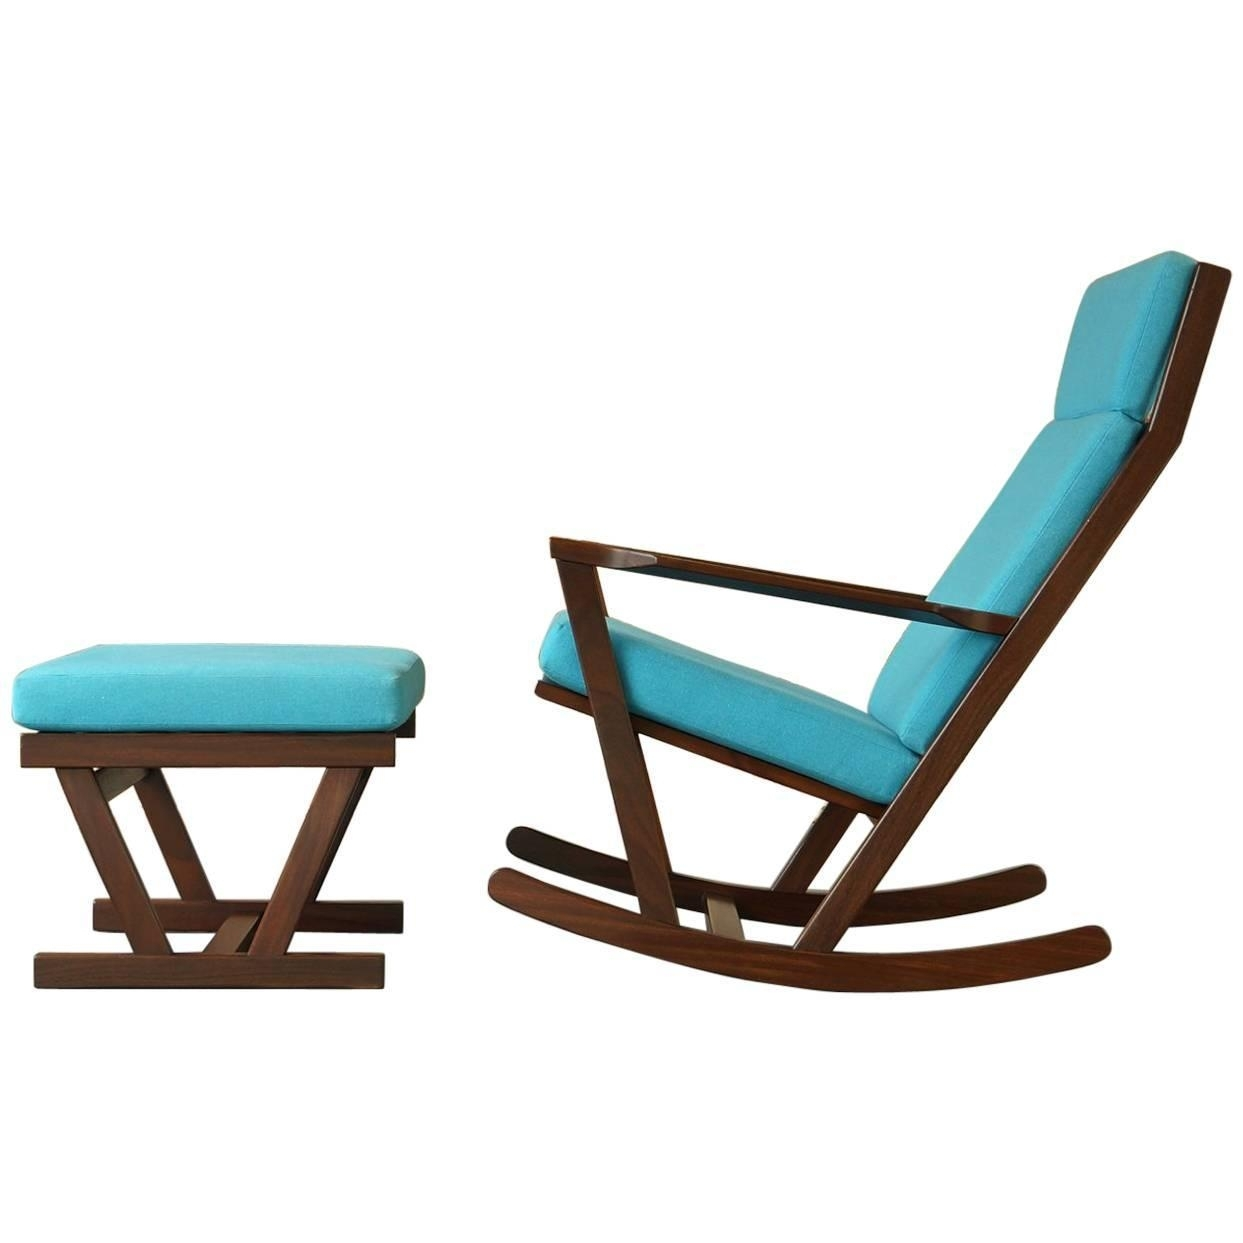 Vintage Rocking Chairpoul Volther For Frem Rojle In Afromosia Throughout Retro Rocking Chairs (View 12 of 15)